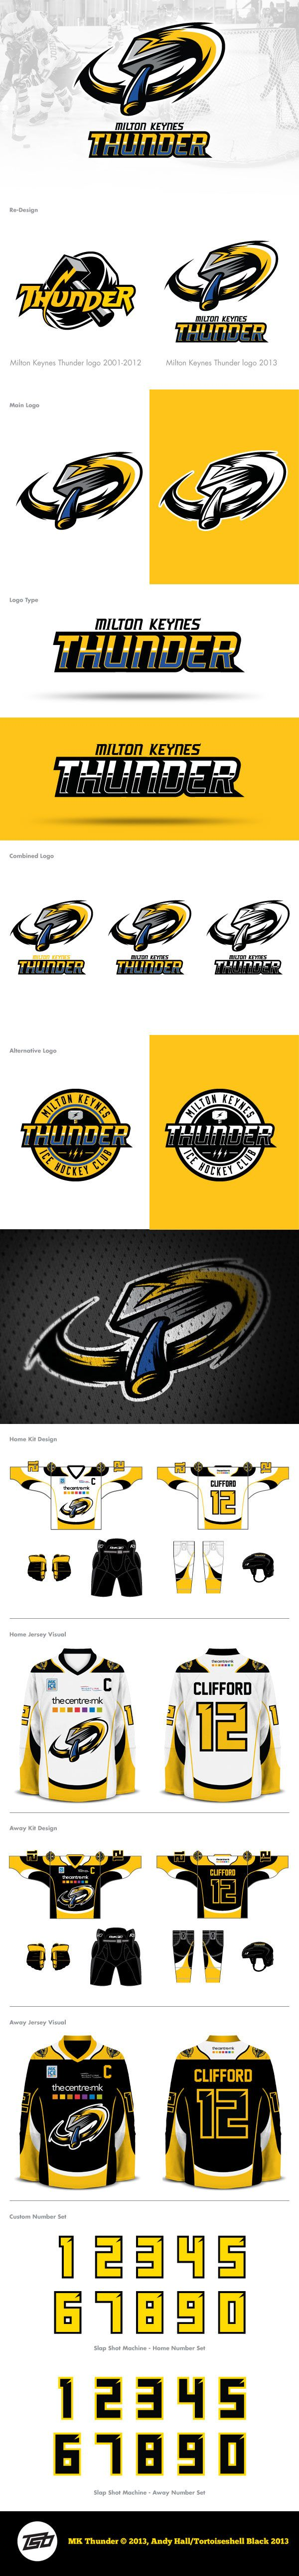 The DFC Milton Keynes Thunder are an ice hockey team from Milton Keynes, England and are the second team in the city behind Milton Keynes Lightning. They currently play in the English National Ice Hockey League South Division One league.Since their ince…